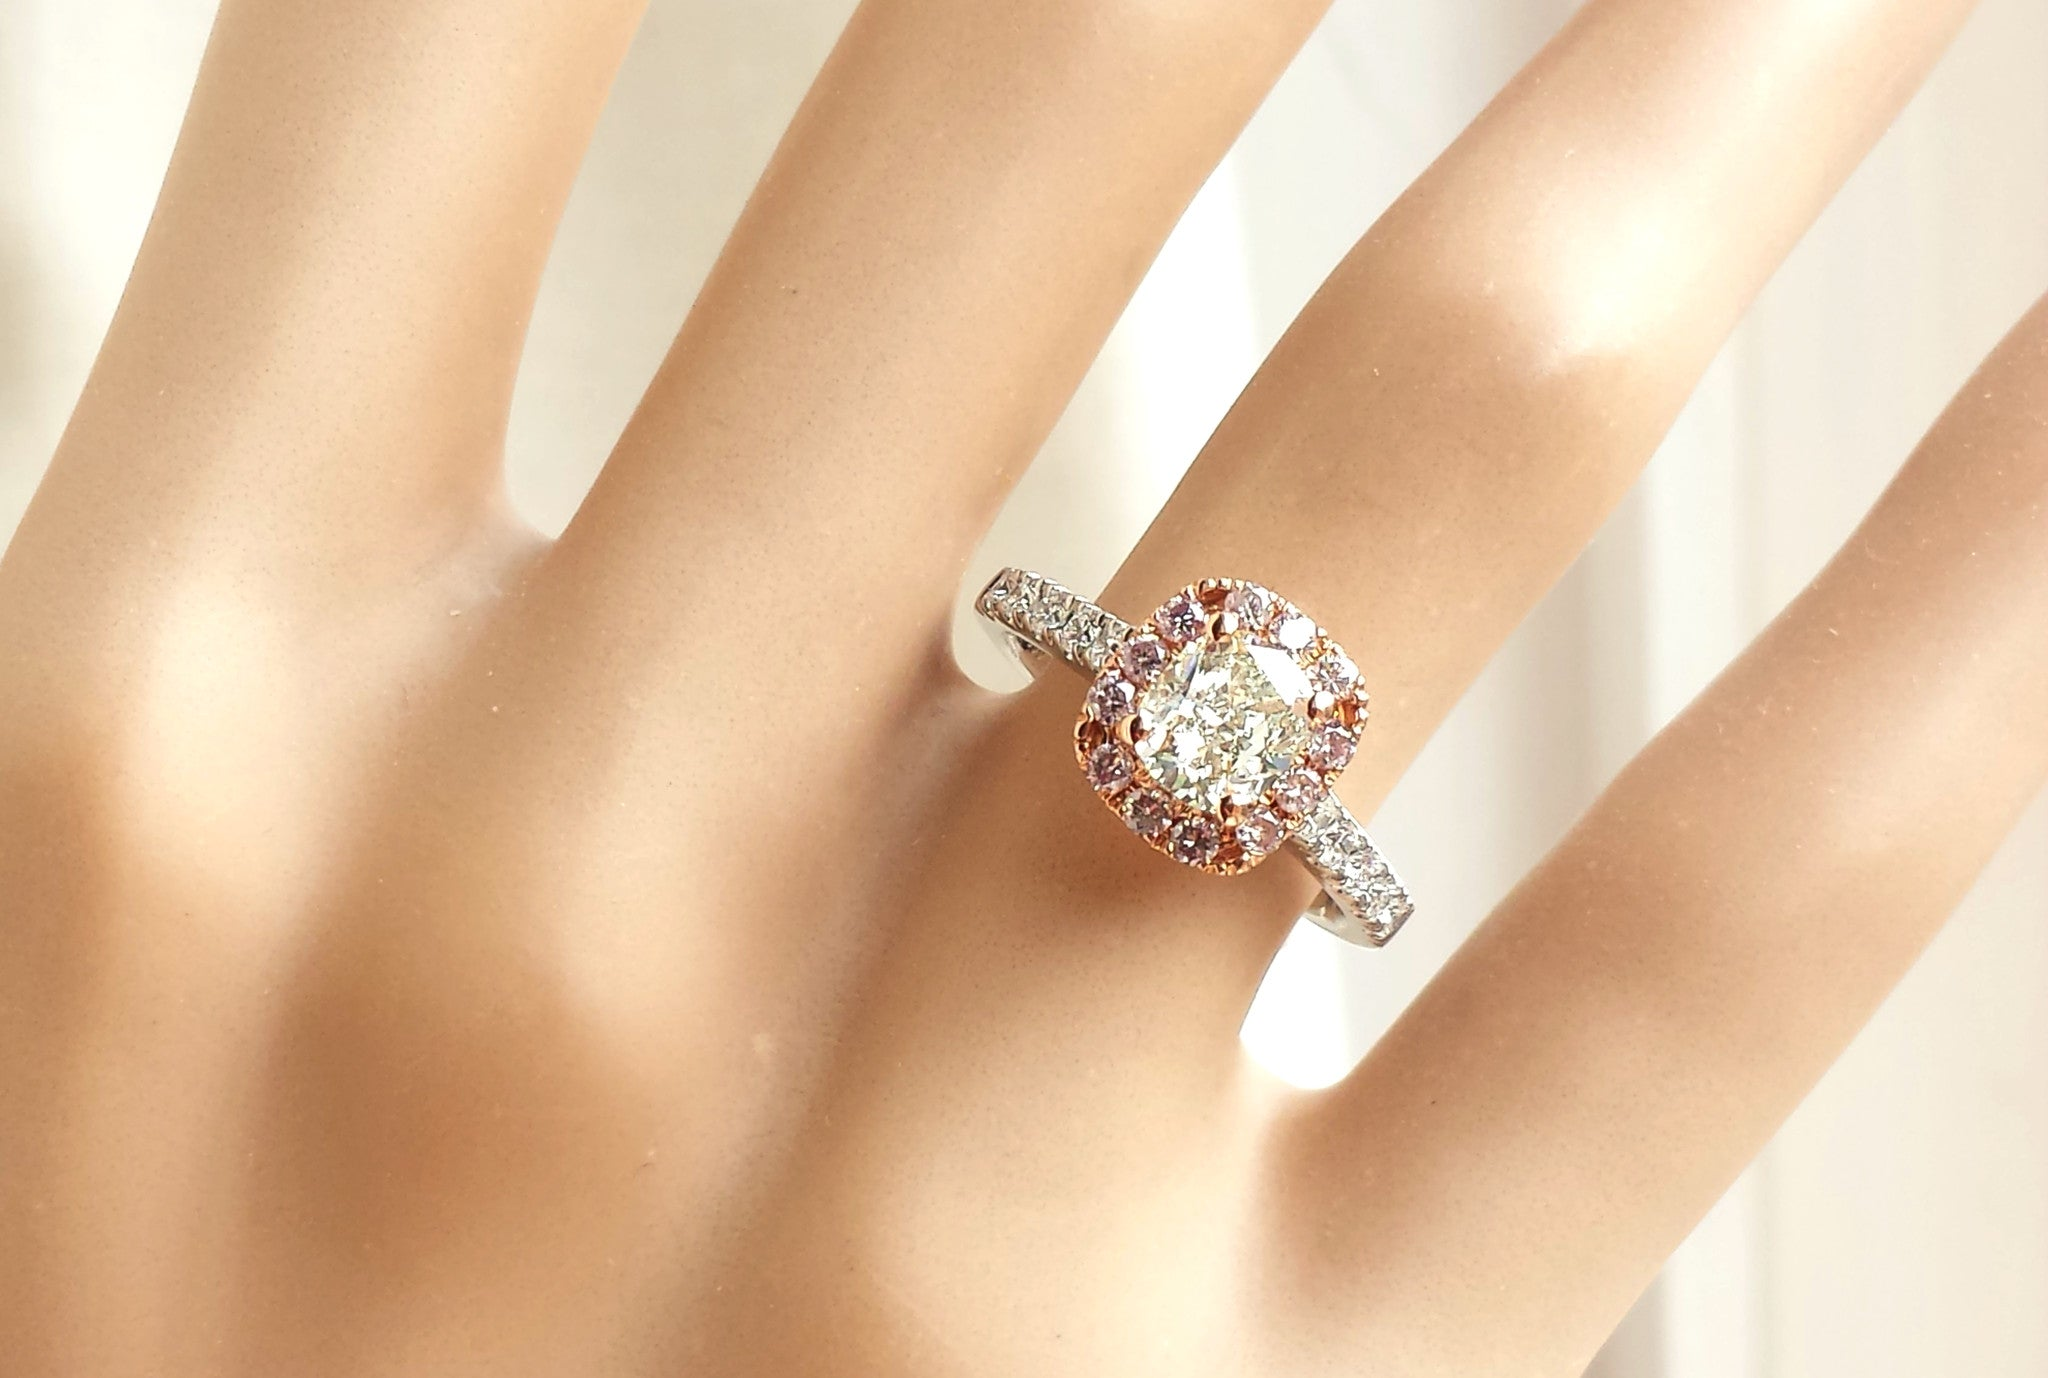 melbourne argyle pg rare sofia exceptional engagement and pink rings in ring adc jewellery diamond the diamonds